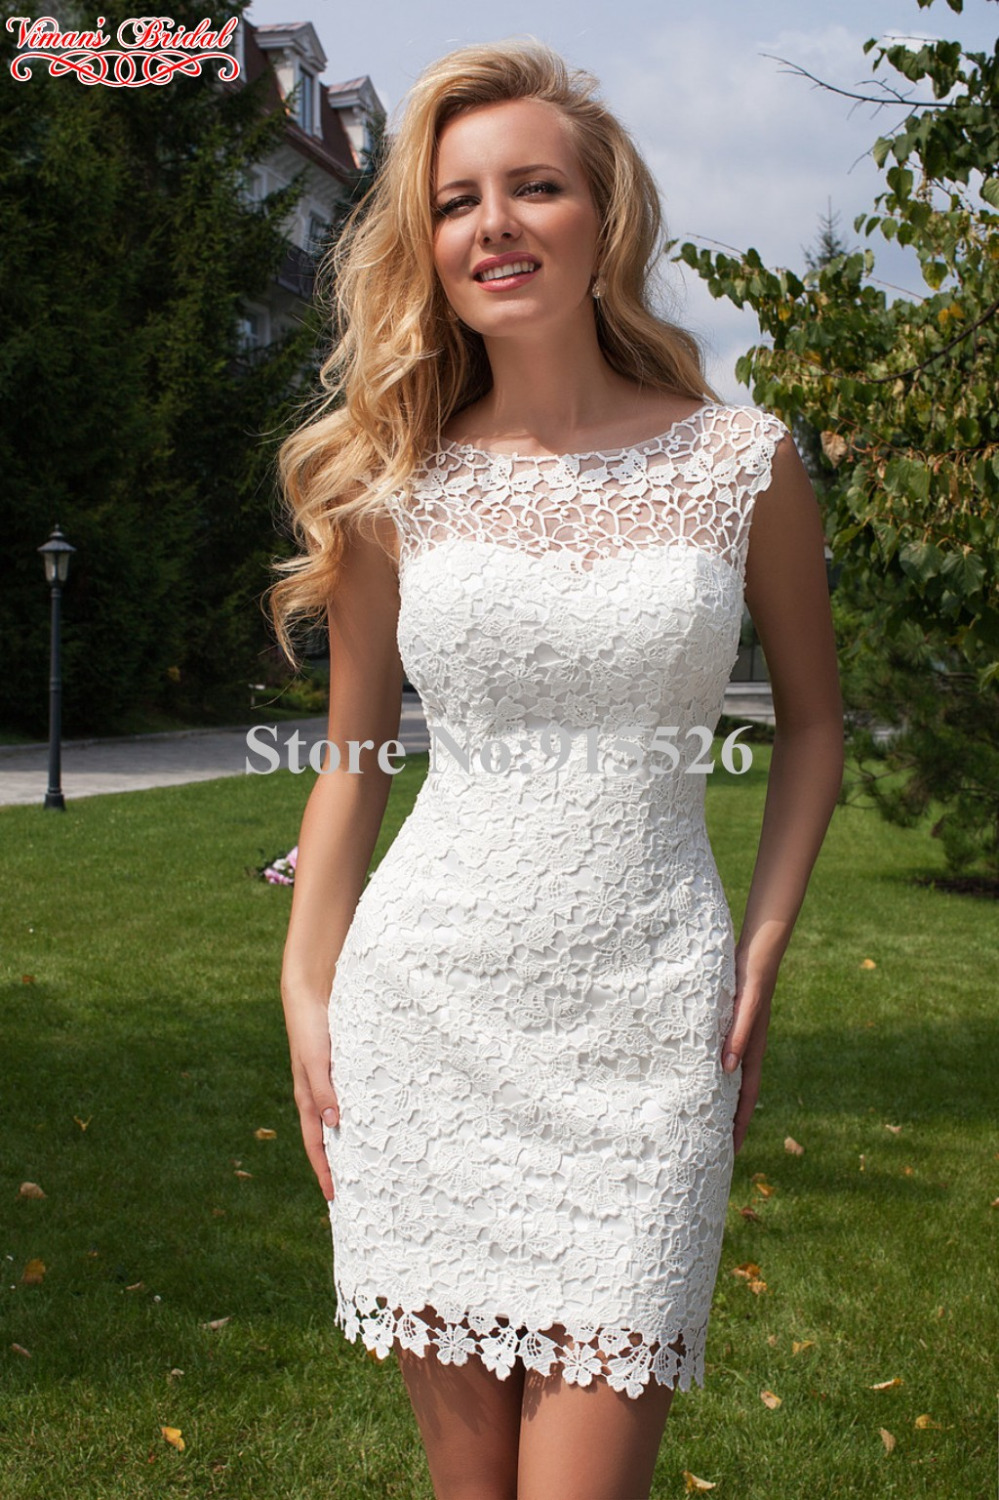 2015 Vimans Bridal Lace Vestido Noiva Curto Appliques Scoop Keyhole Back Mini Wedding Dress With Train Free Shipping AX19 In Dresses From Weddings